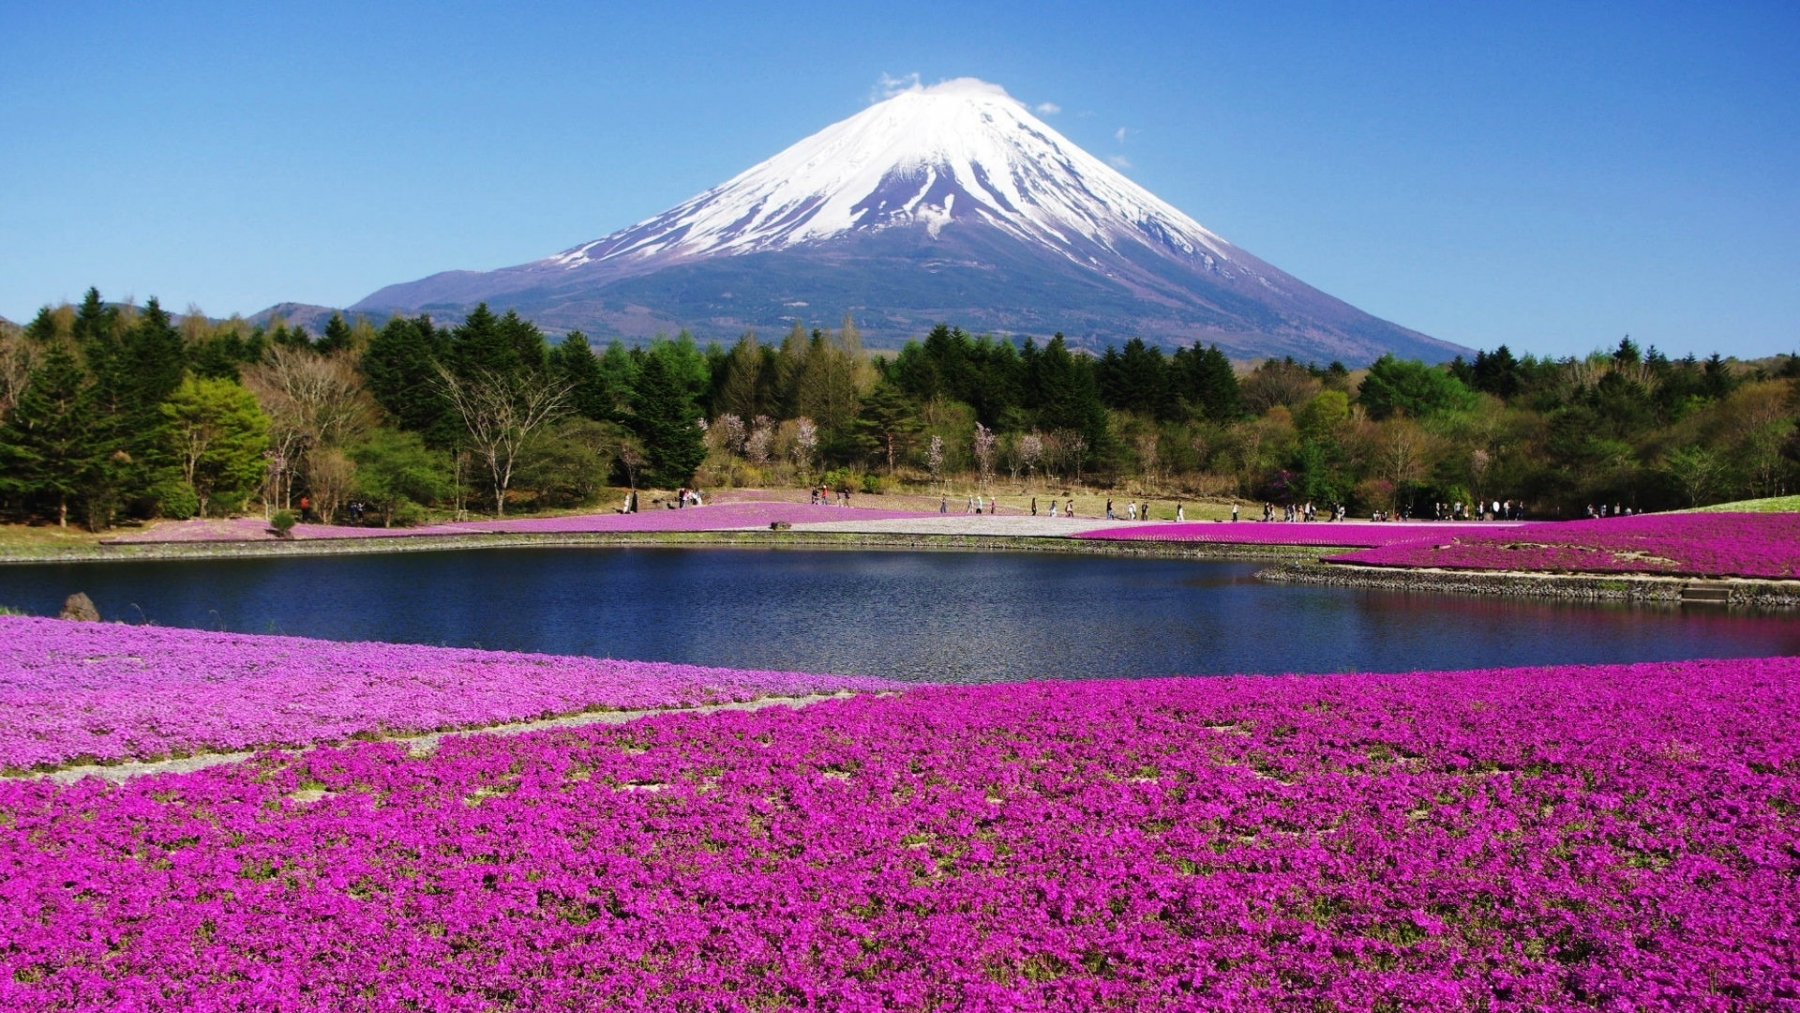 Japan Mount Fuji 2019 HD Desktop Wallpapers YL Computing 1800x1013